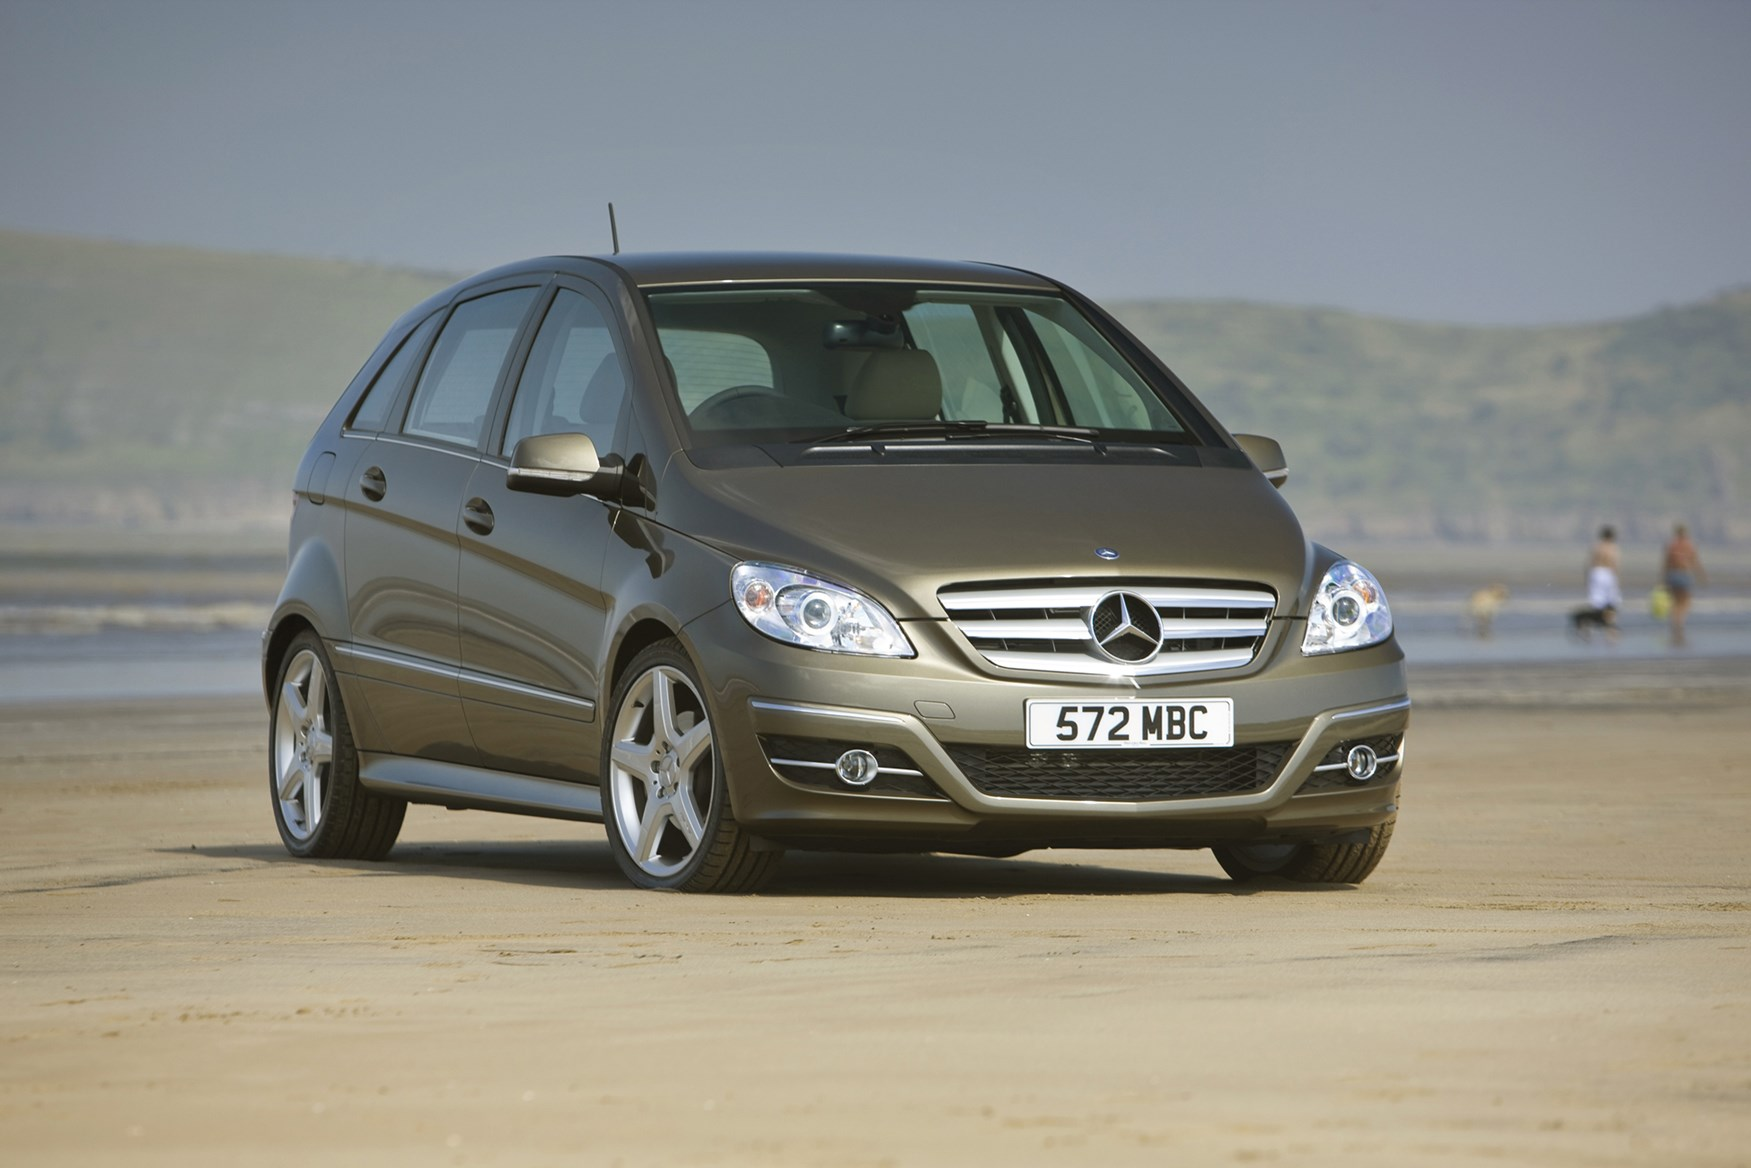 Mercedes benz b class hatchback review 2005 2011 parkers for Mercedes benz reliability ratings